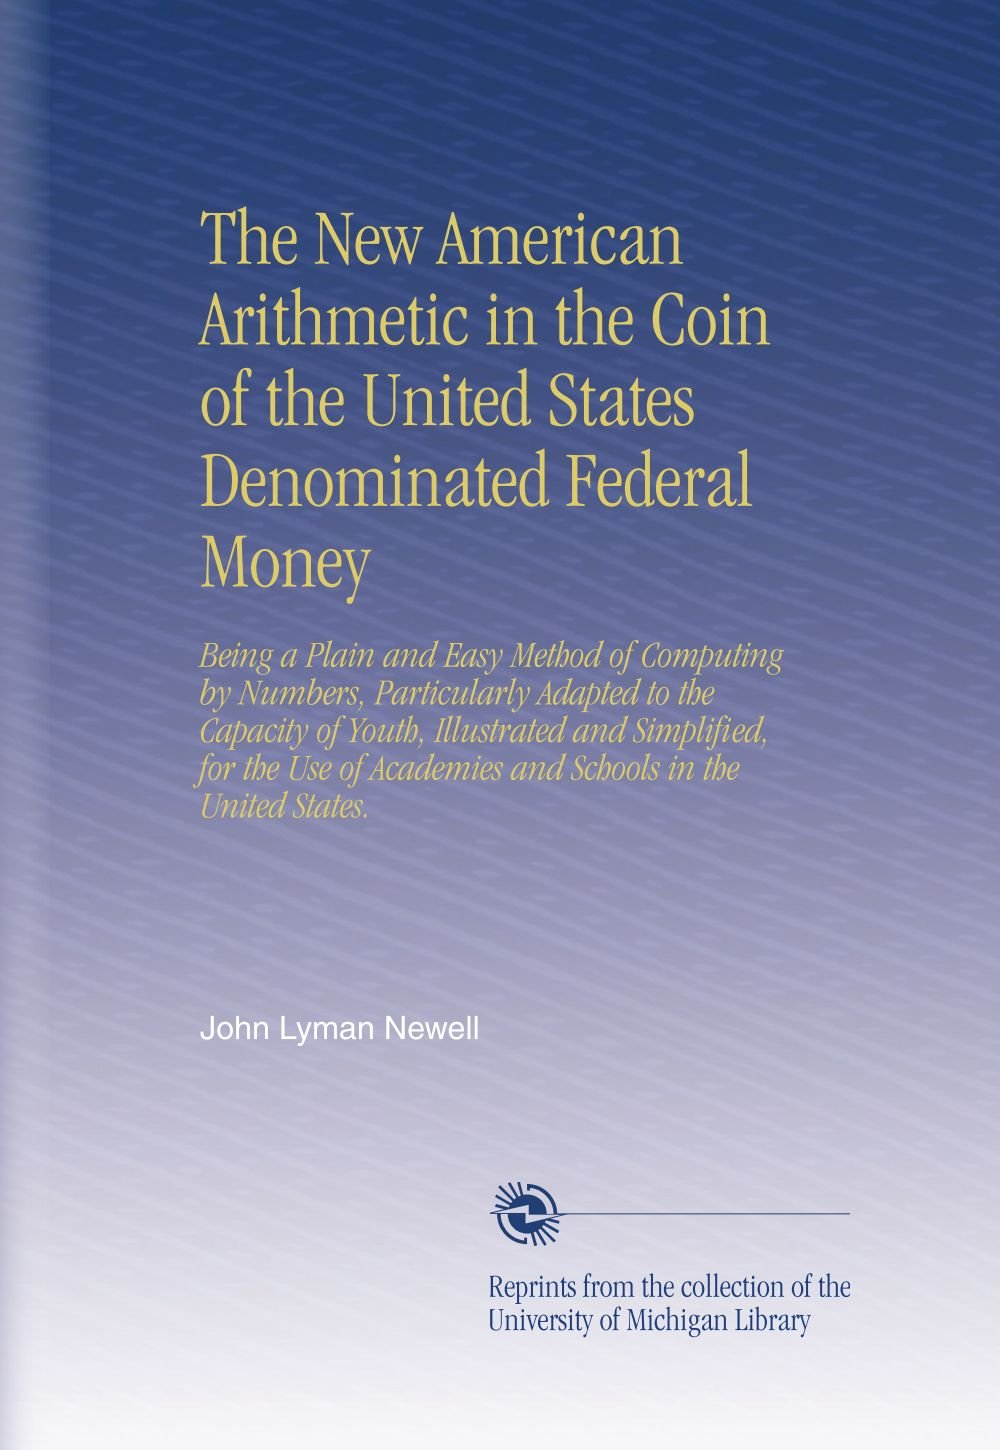 Read Online The New American Arithmetic in the Coin of the United States Denominated Federal Money: Being a Plain and Easy Method of Computing by Numbers, ... Academies and Schools in the United States. pdf